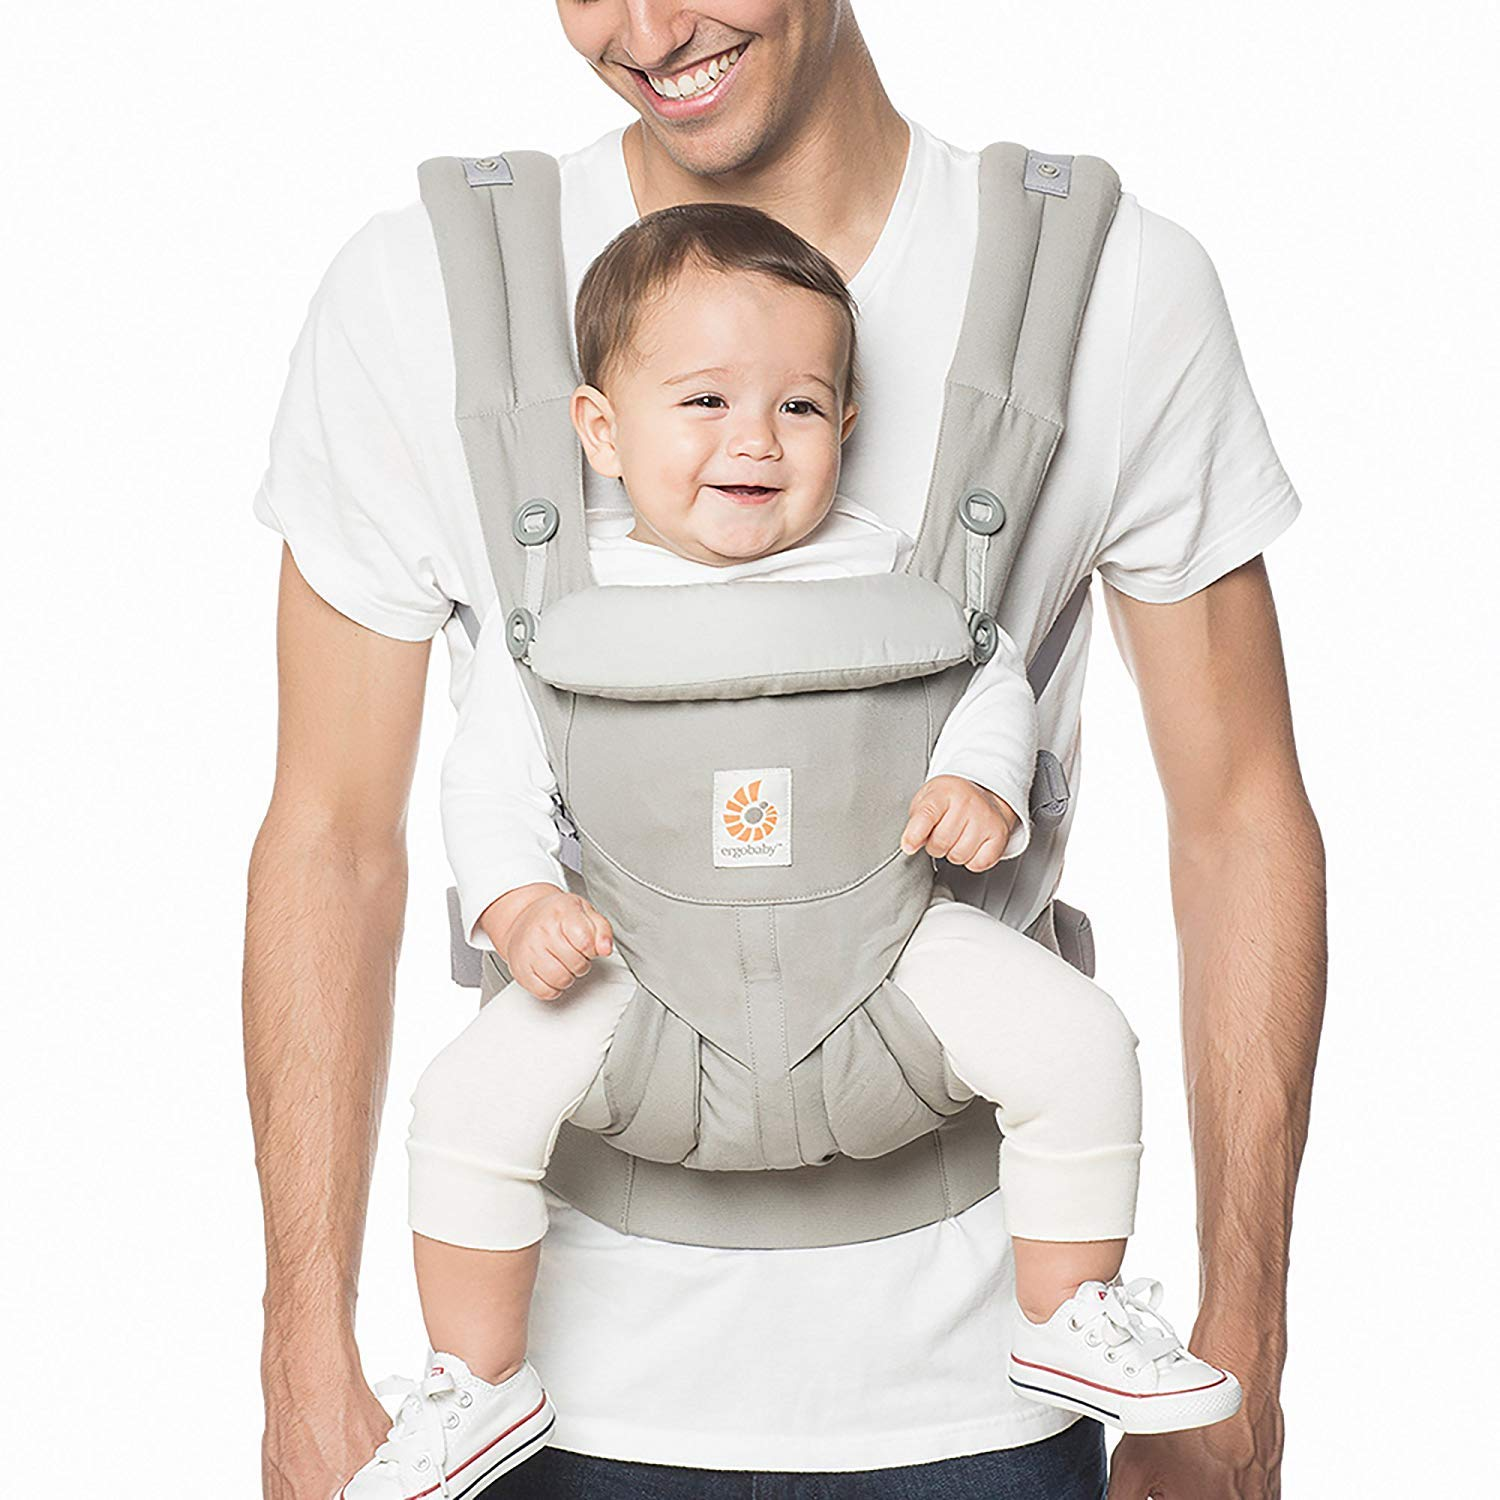 da2290fb4a6 Amazon.com   Ergobaby Omni 360 All-in-One Ergonomic Baby Carrier ...